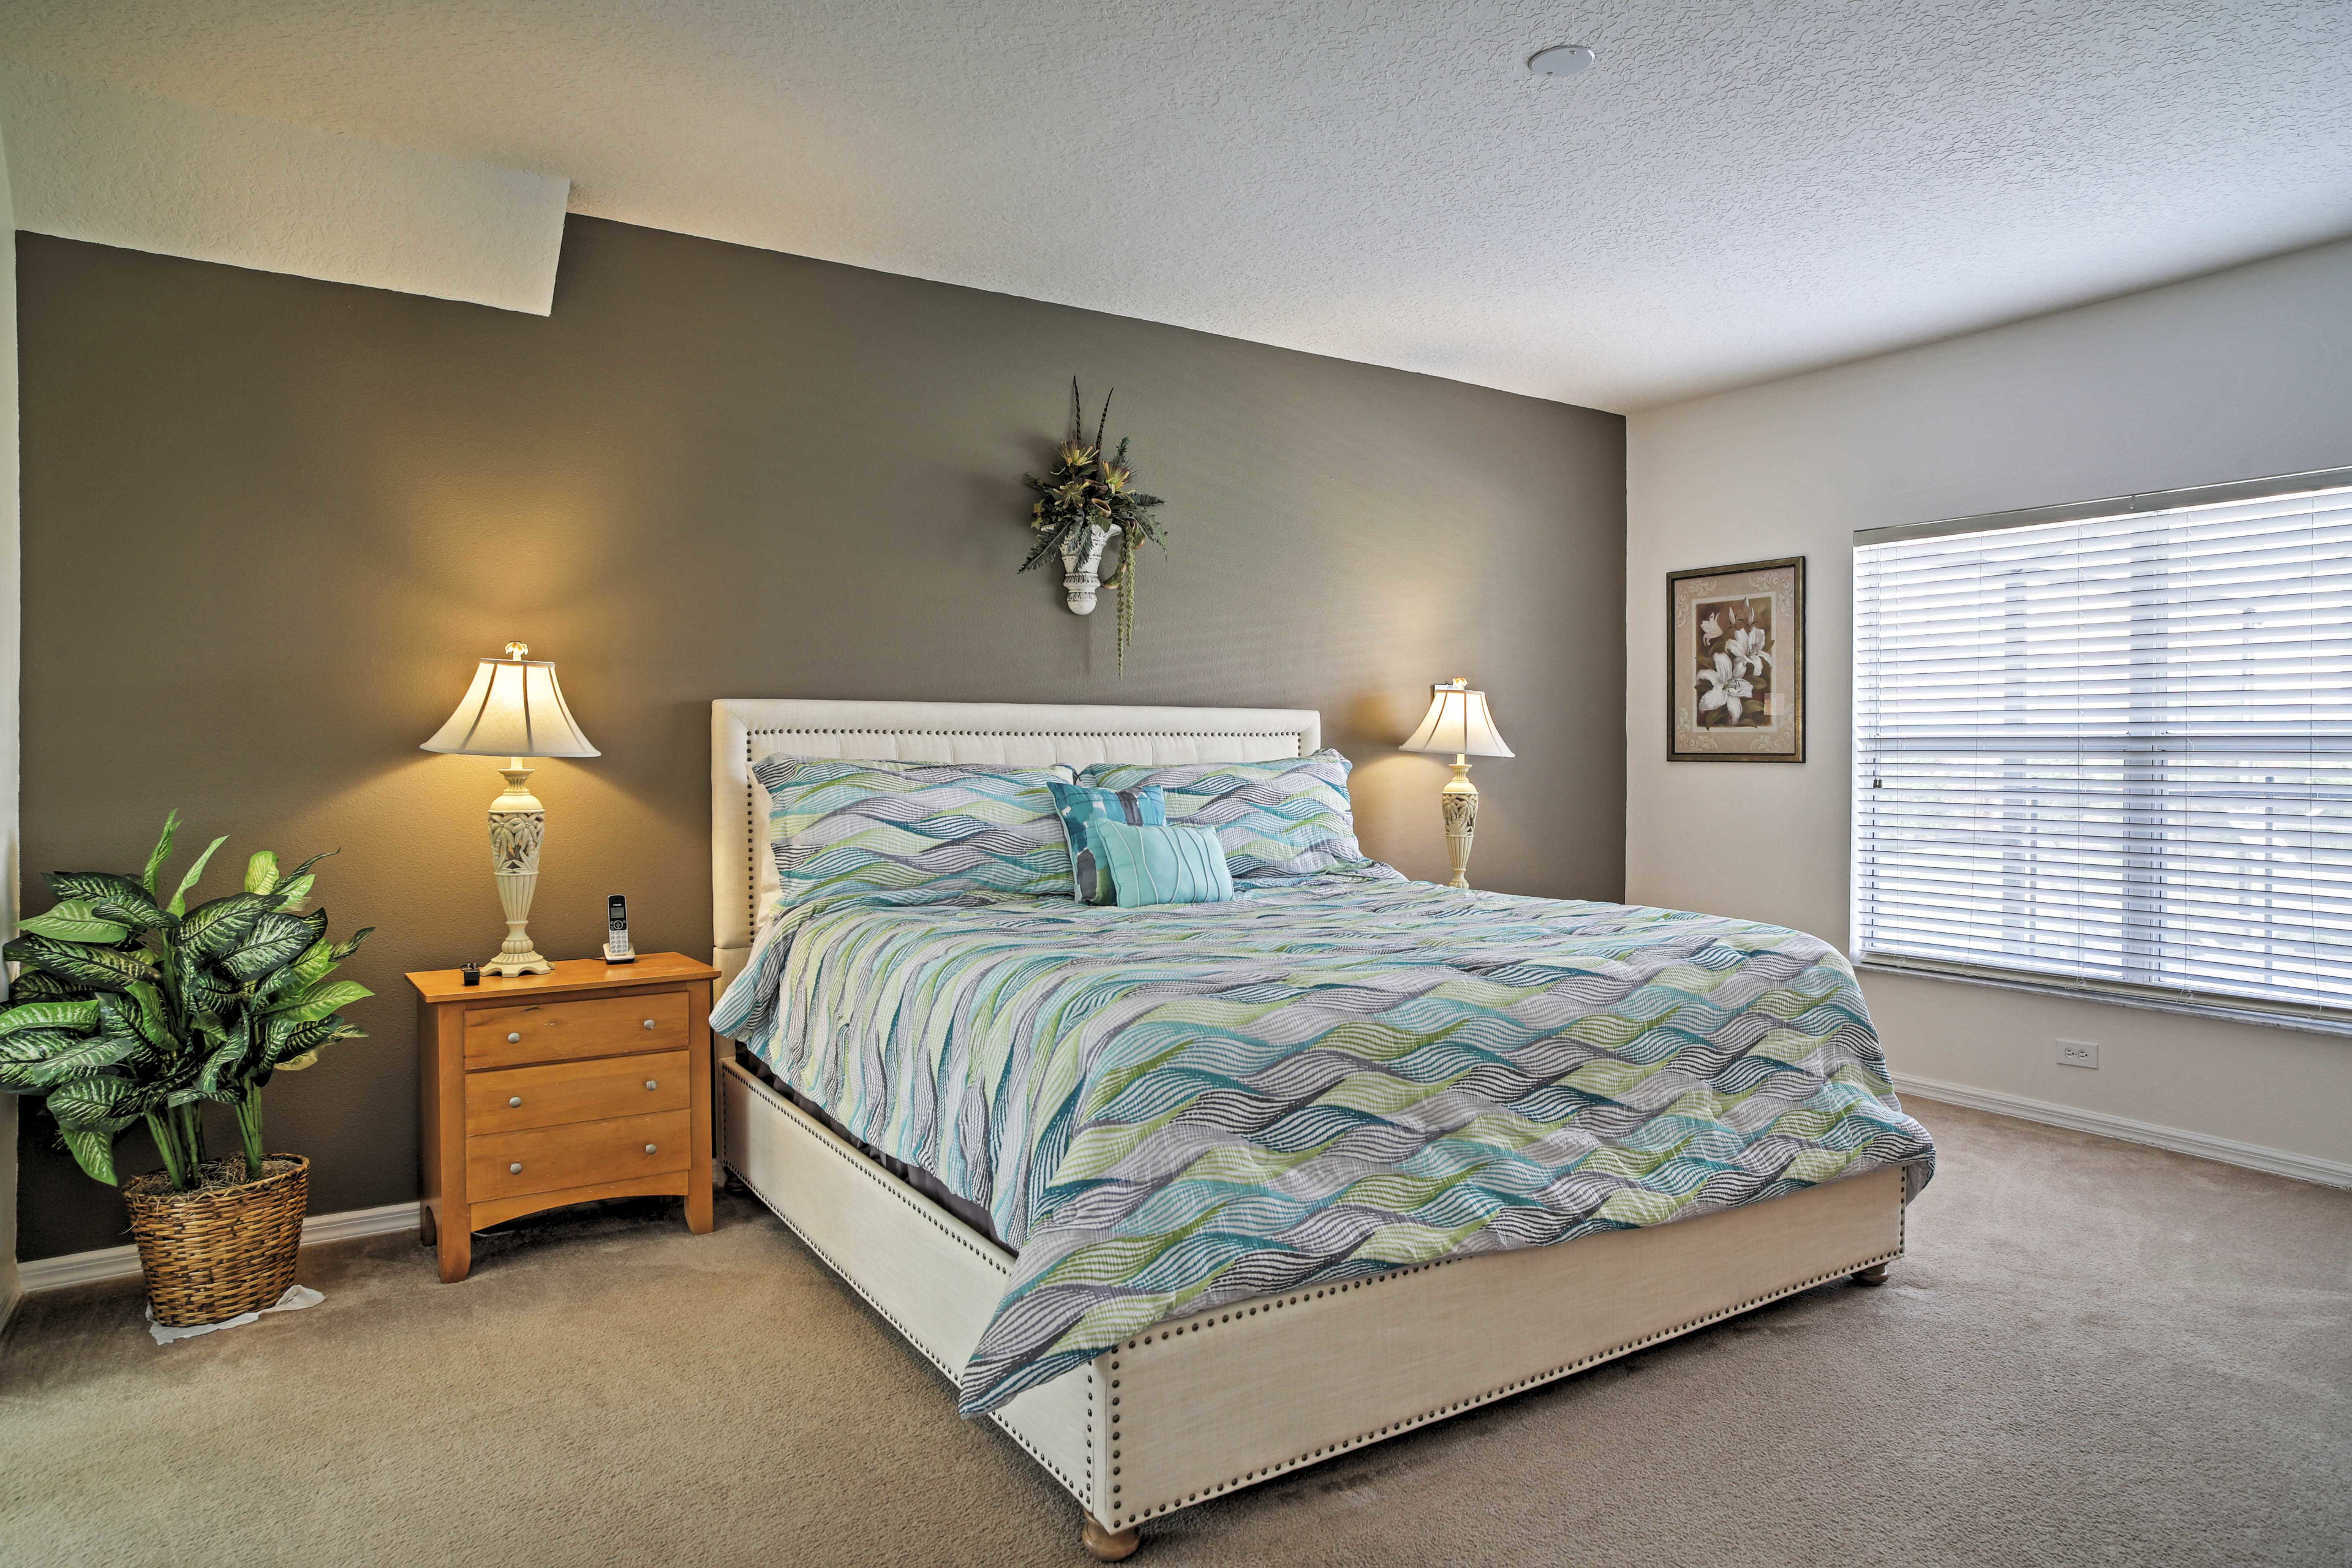 This spacious master bedroom boasts a king bed and private en-suite bathroom.